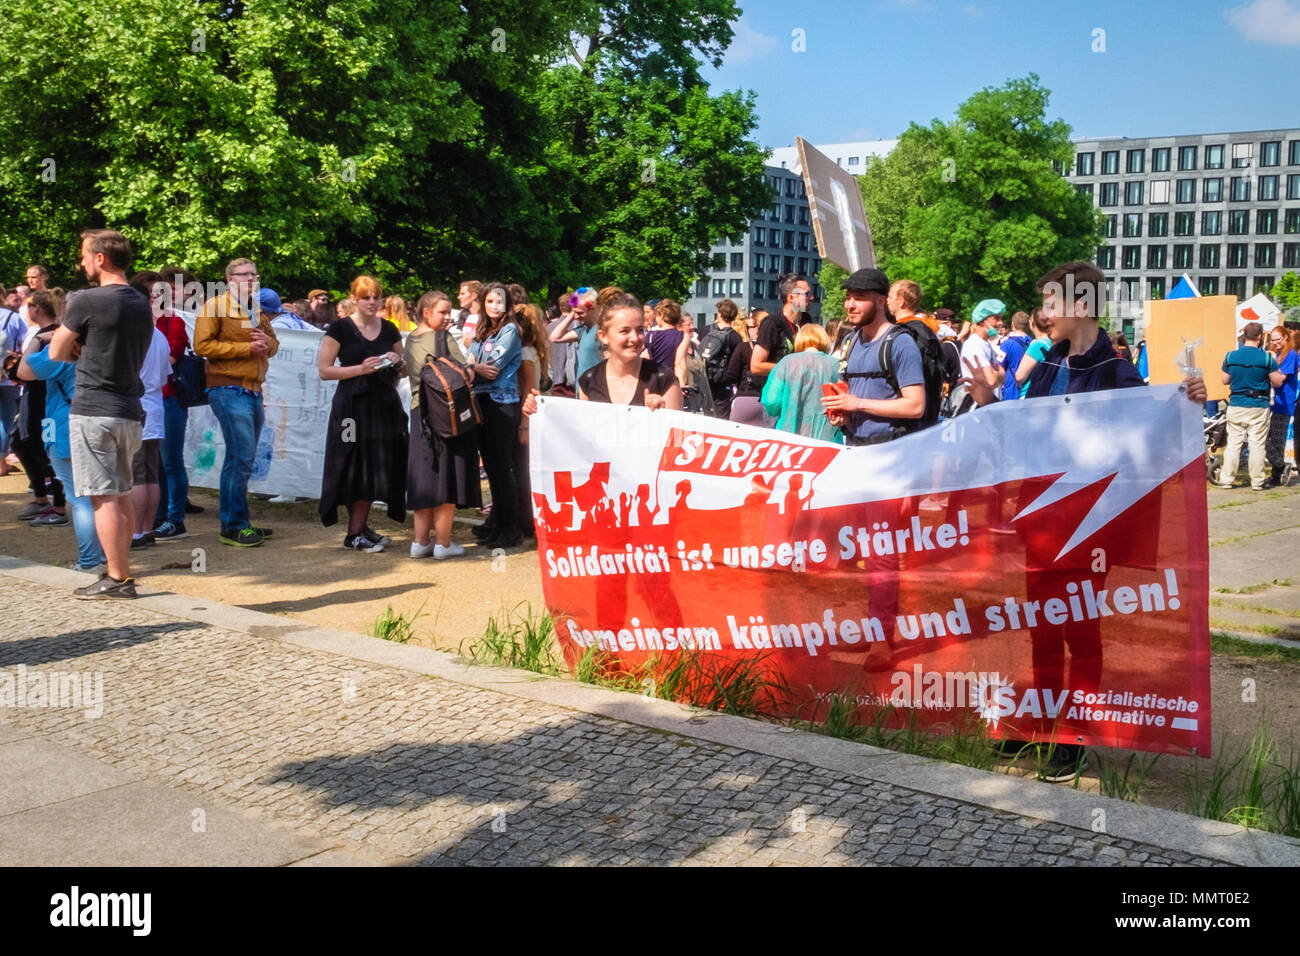 Germany, Berlin, Mitte, 12th May 2018. 'Walk for Care' demonstration on International Day of Care. Nurses, trainees and carers gathered at Invalidenpark in Berlin and marched past the Federal Ministry of Health on the International Day of Care, The protesters were demonstrating for decent conditions and education to allow nurses to deliver a high standard of care. There are approximately 35000 vacancies for nurses in Germany and clinics have to look abroad for trained staff. Credit: Eden Breitz/Alamy Live News - Stock Image